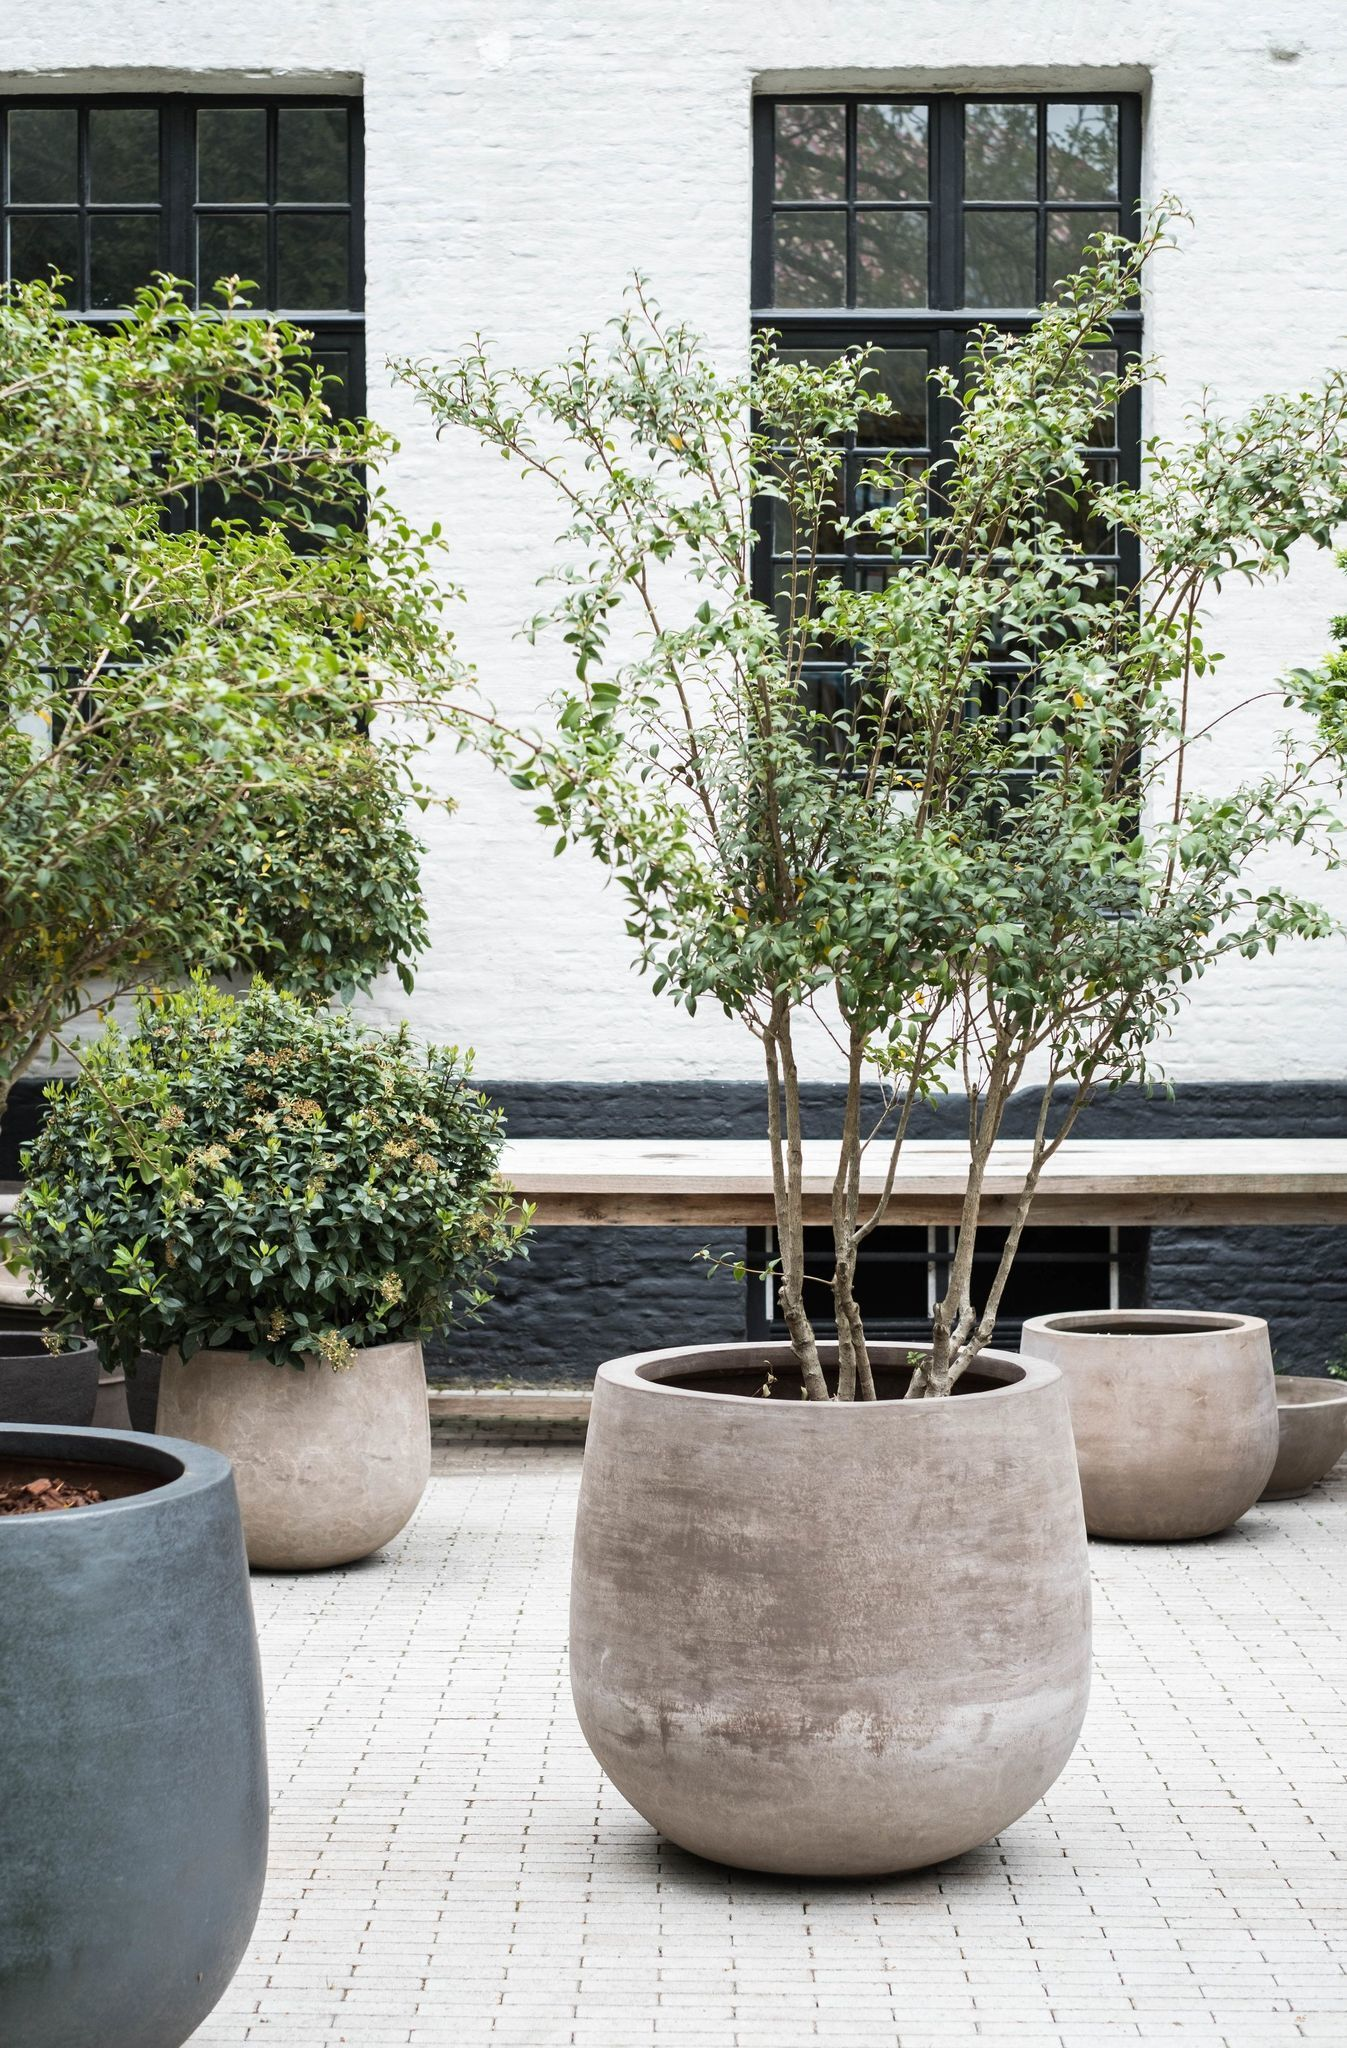 14 -Oversized pots bring character to the outdoor space